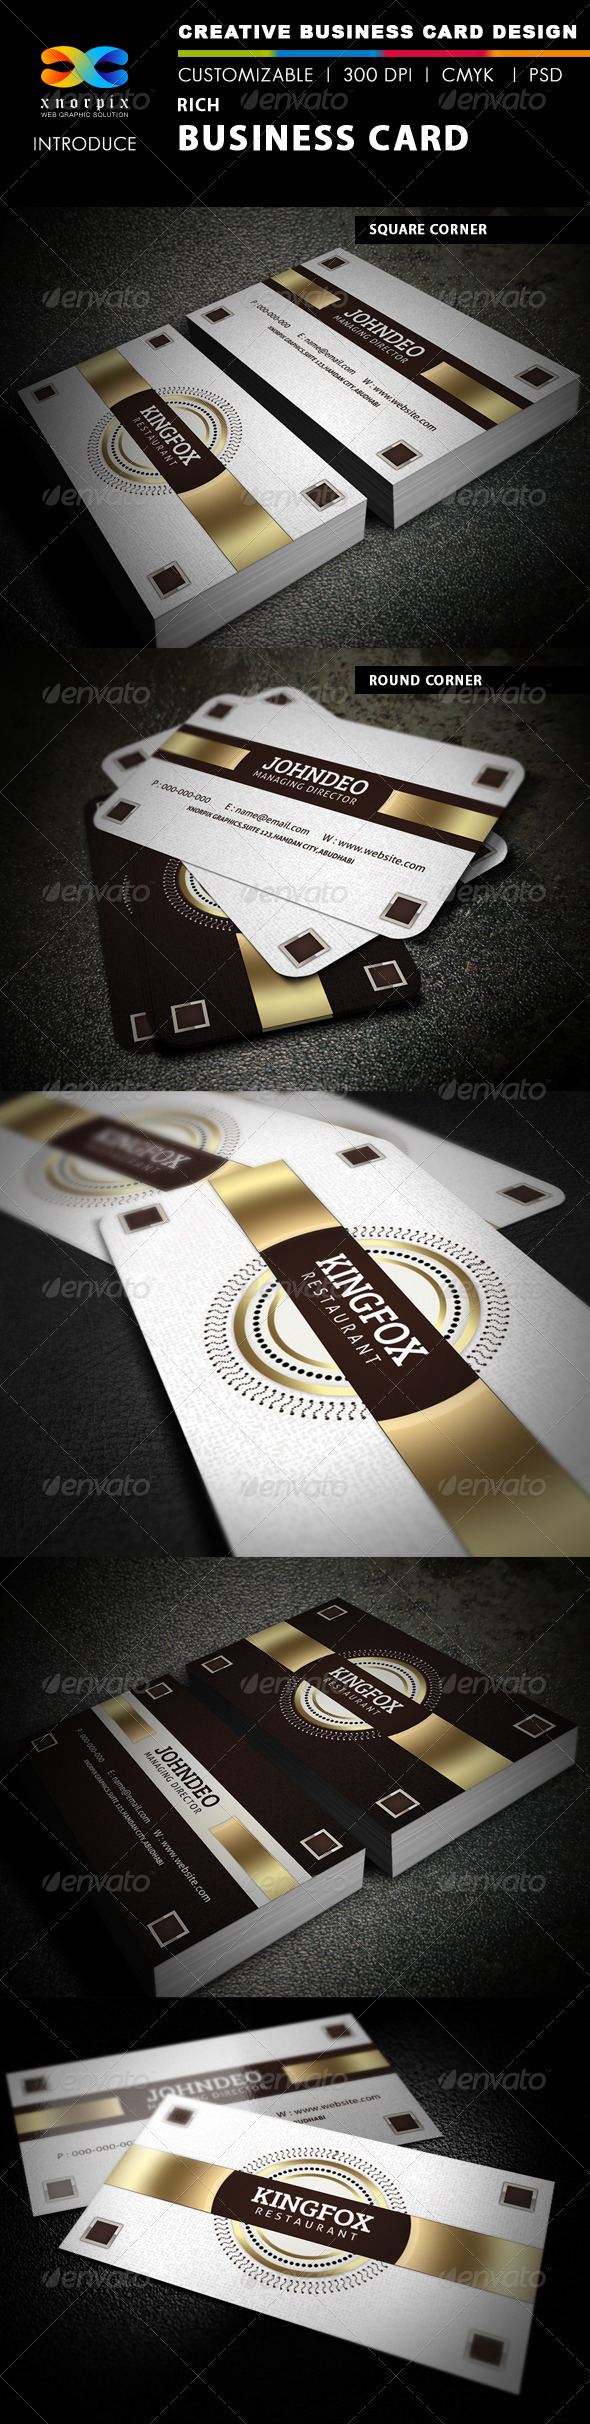 Rich Business Card - Corporate Business Cards